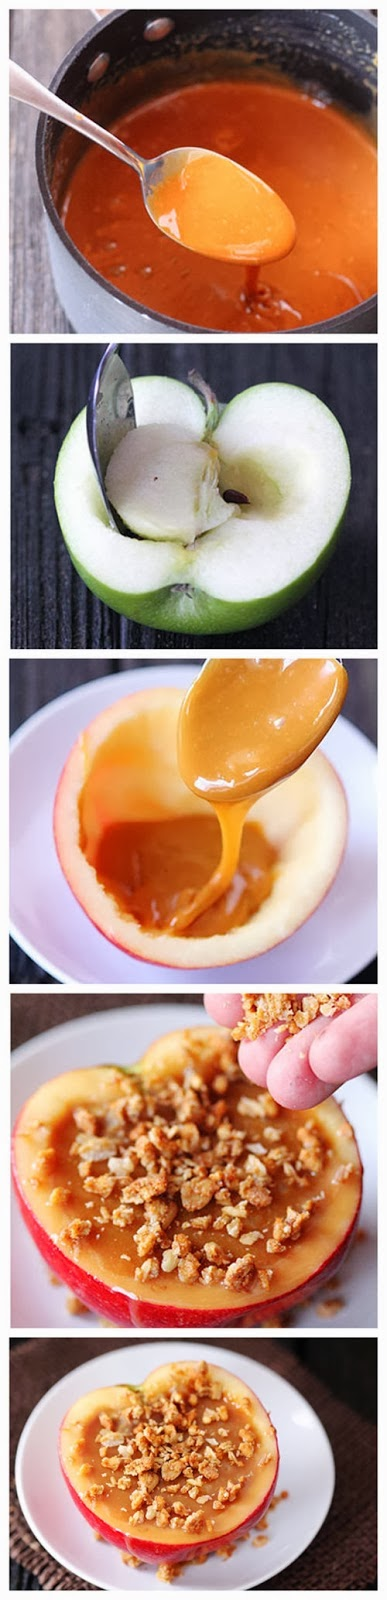 Inside-Out Caramel Apples